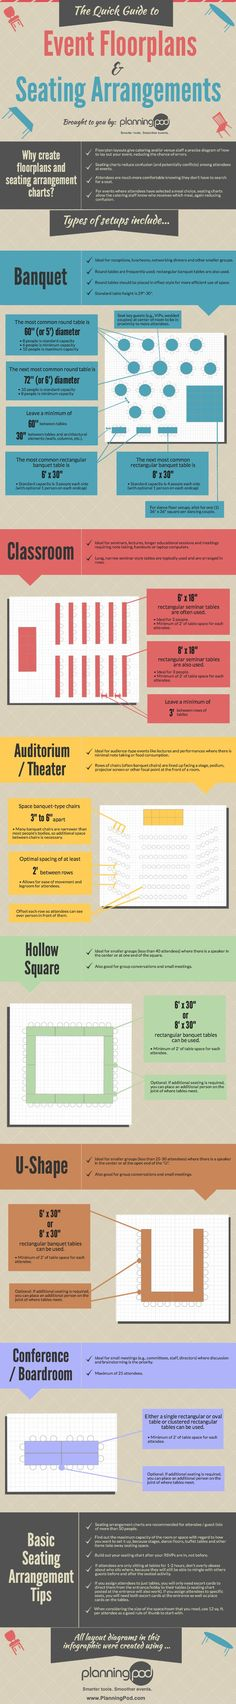 Get an at-a-glance look at the basics of creating an event floor plan / seating arrangement / table layout with this helpful infographic. Rockwell Catering and Events